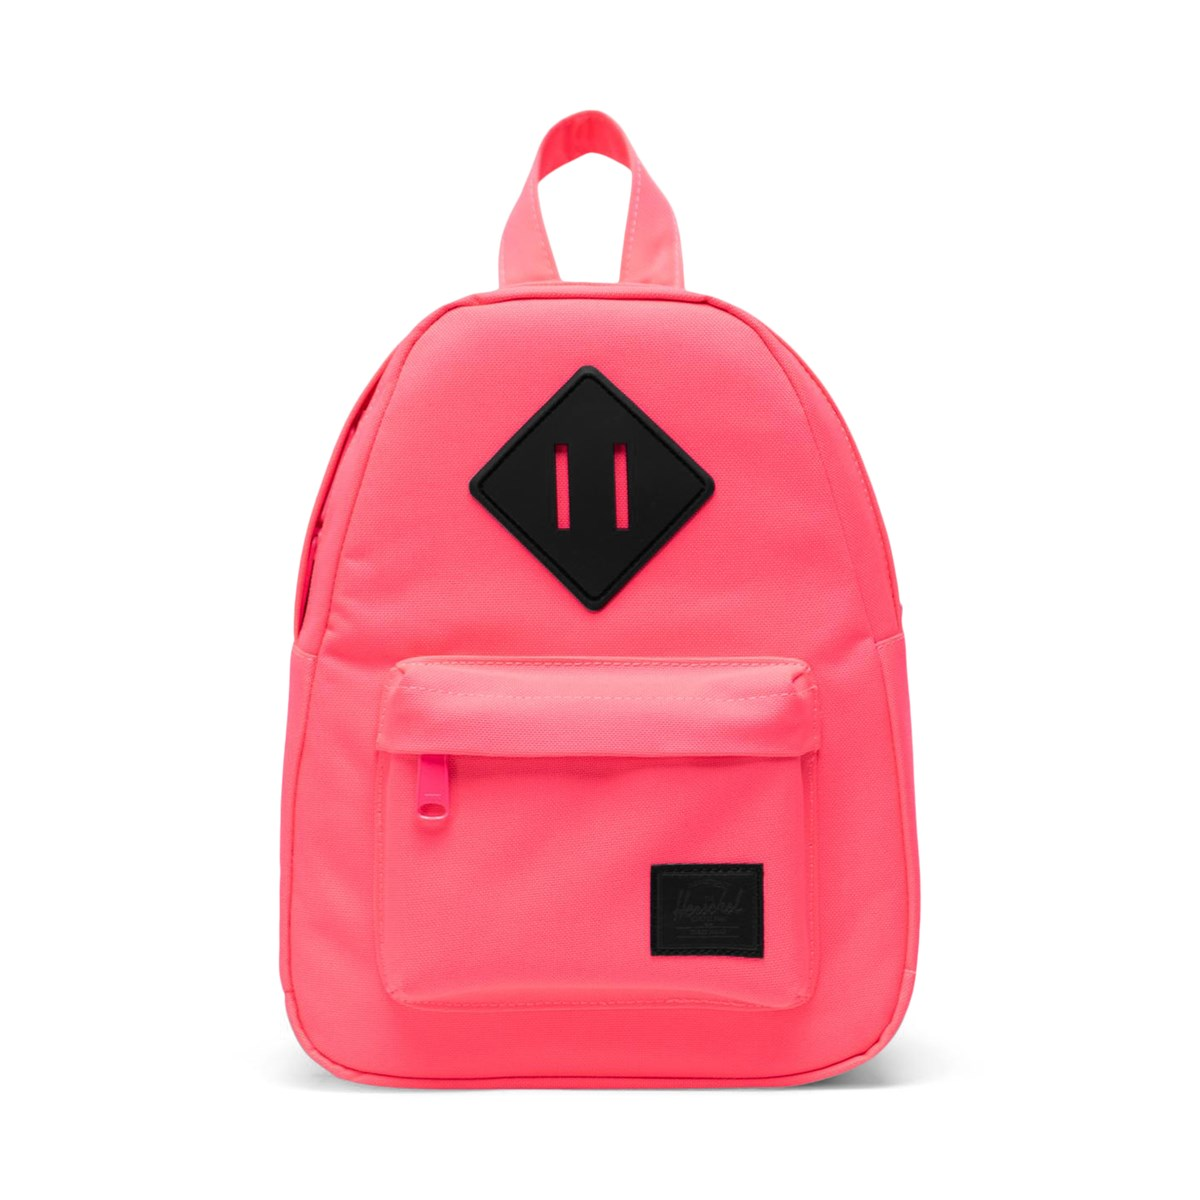 Heritage Mini Backpack in Neon Pink